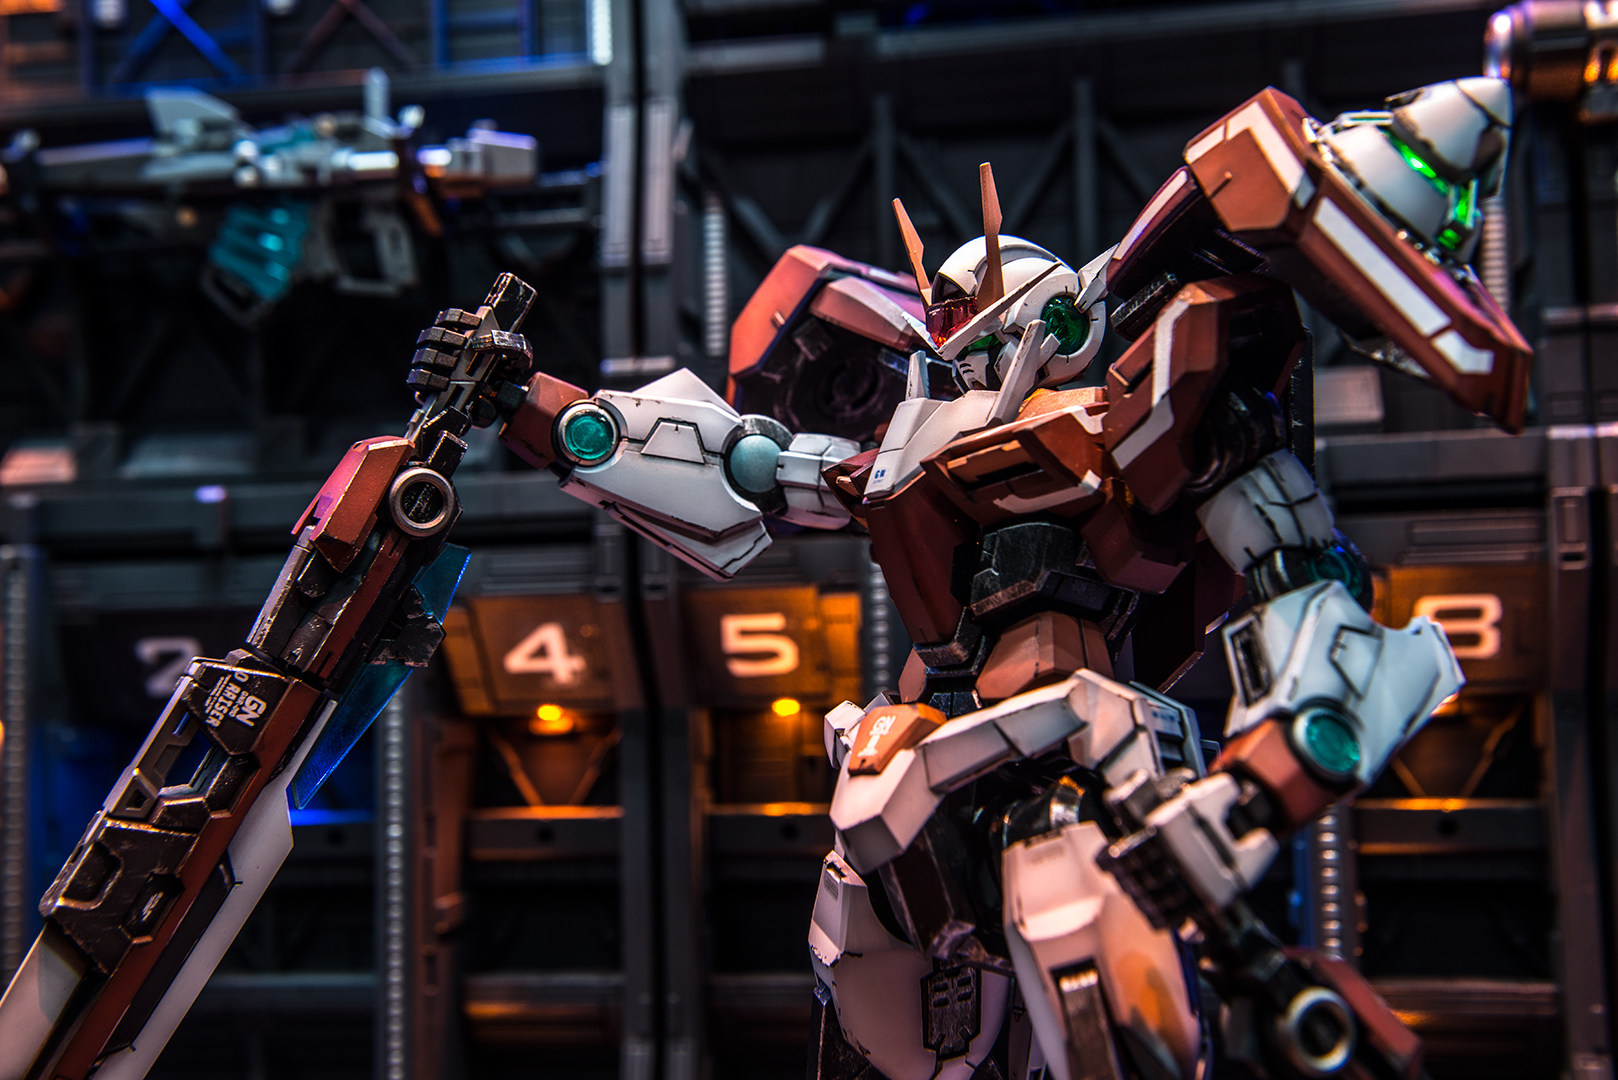 Amazing Diorama Mg 1 100 00 Gundam Seven Sword Work By Zteng Photoreview Full Size Images